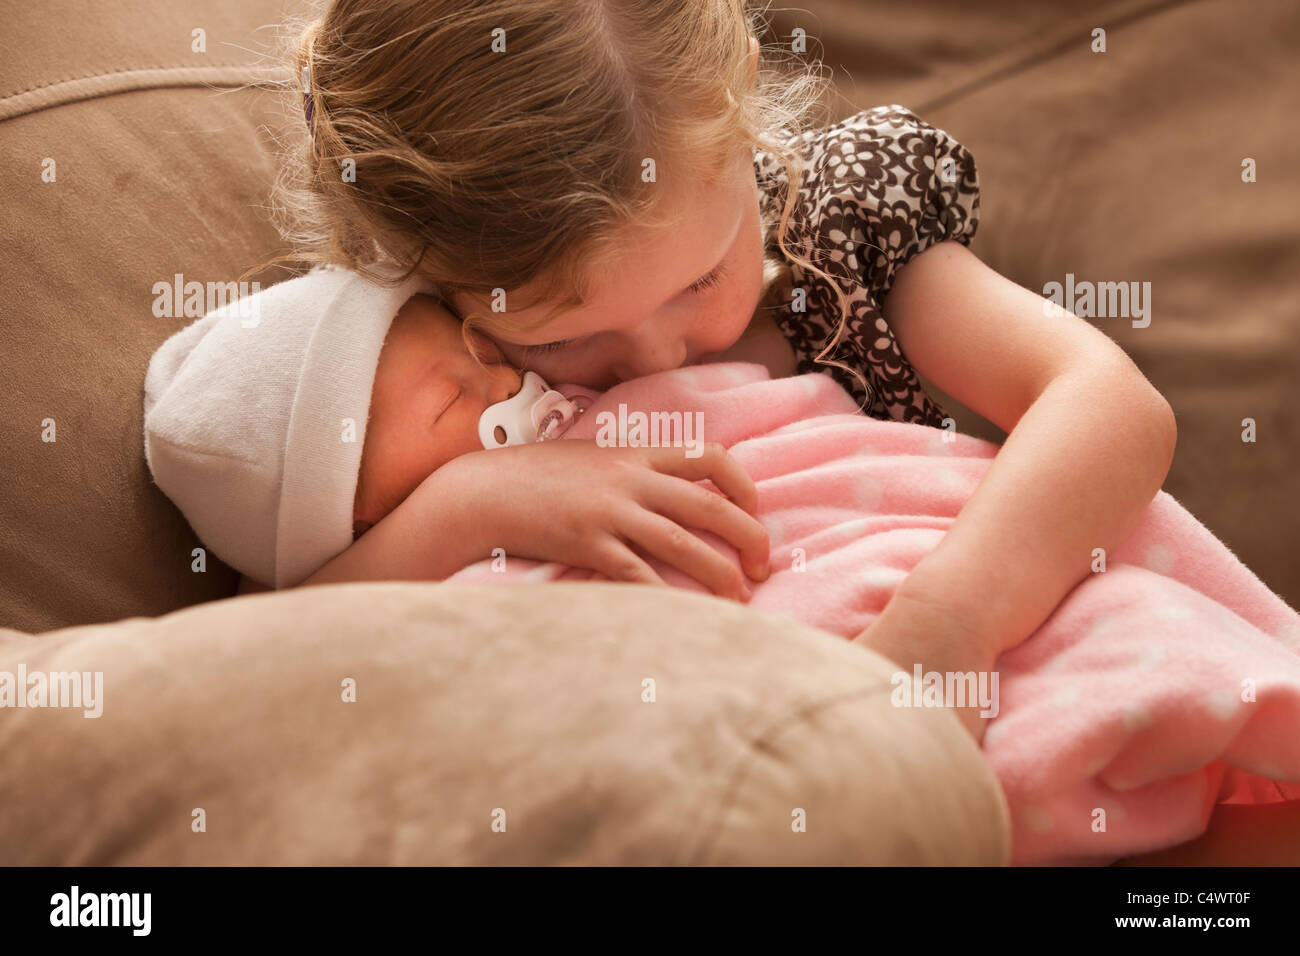 USA,Utah,Lehi,Girl (2-3) embracing baby sister on sofa Stock Foto